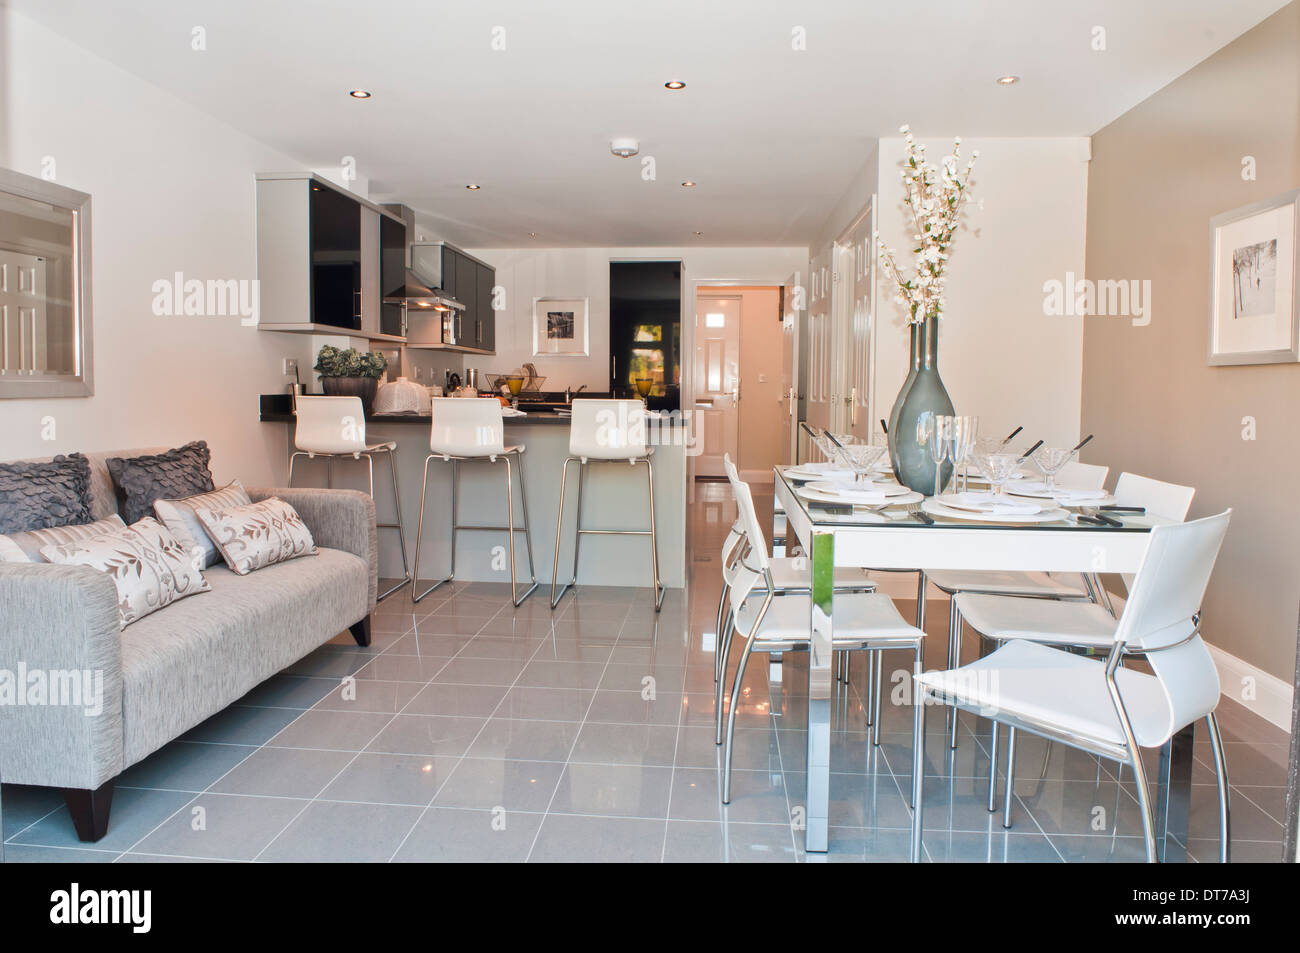 Show Home Kitchen Diner With Sofa Stock Photo Royalty